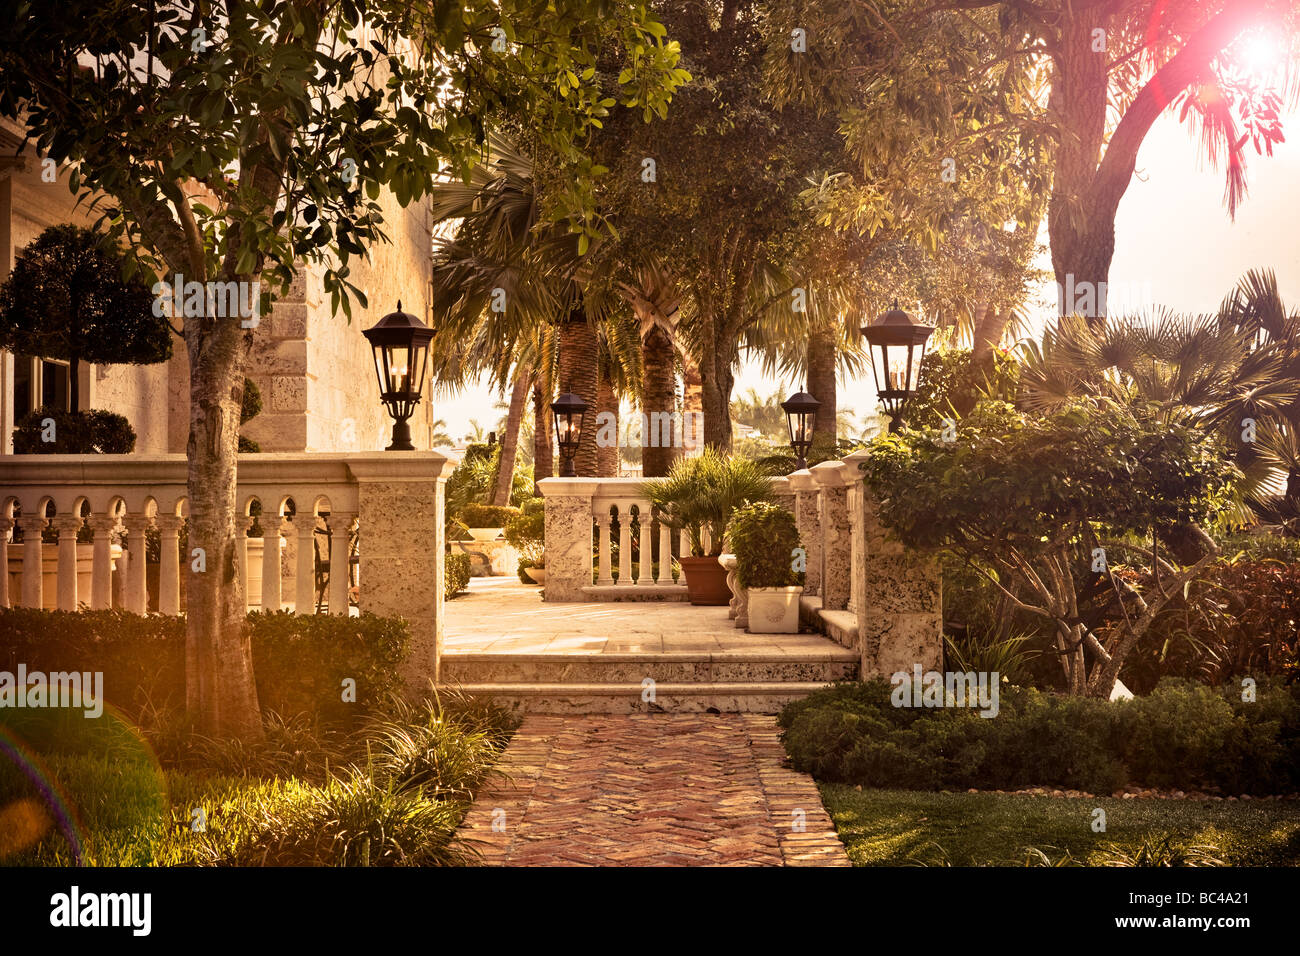 Une terrasse patio en pierre calcaire à un manoir à Boca Raton, Floride Photo Stock